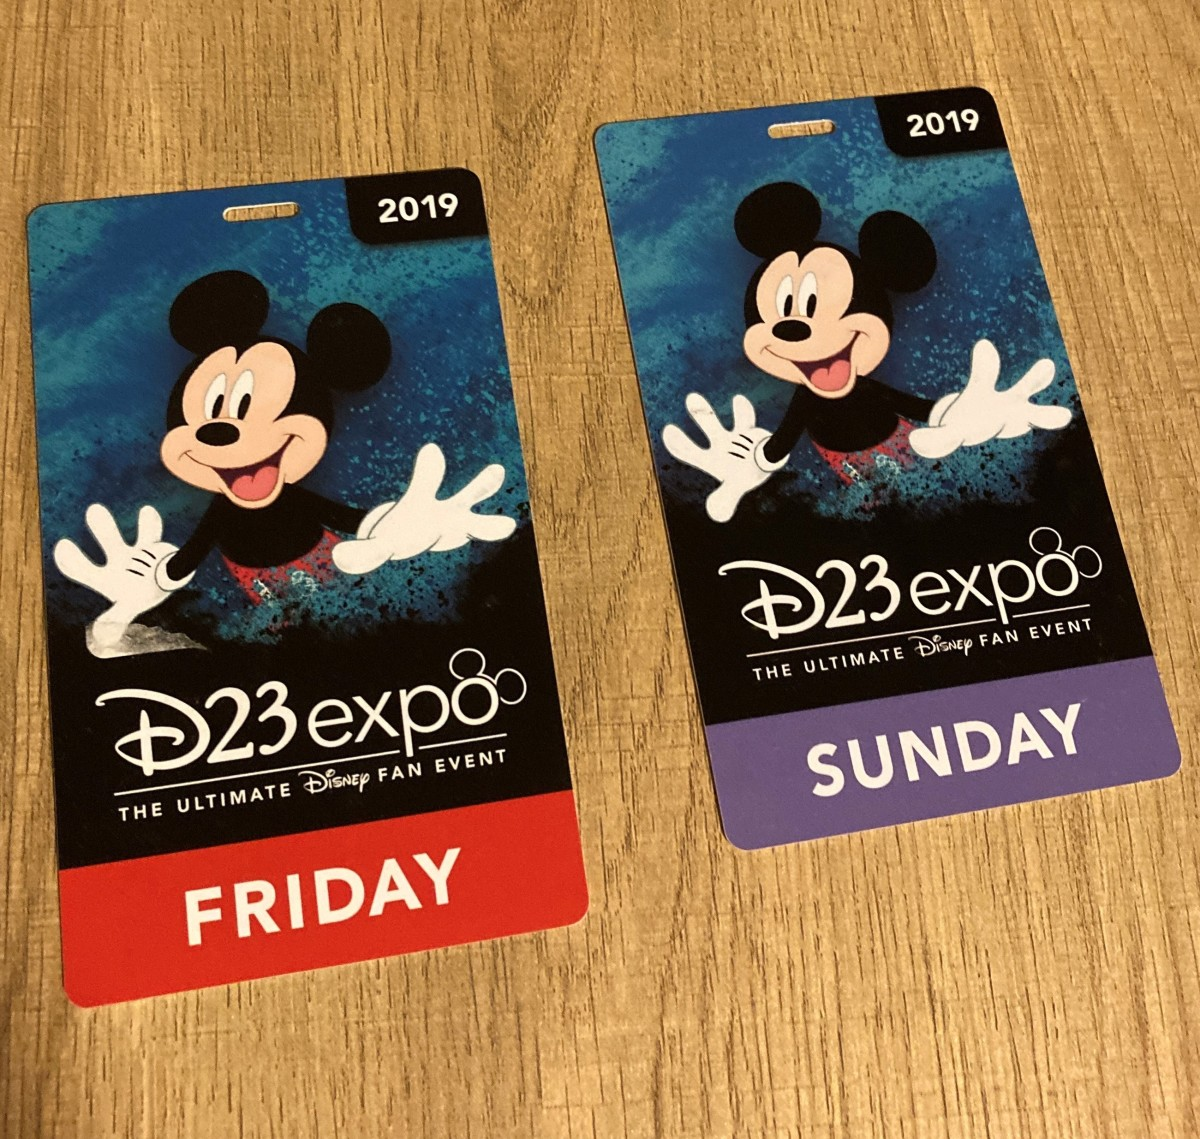 D23 Expo badges